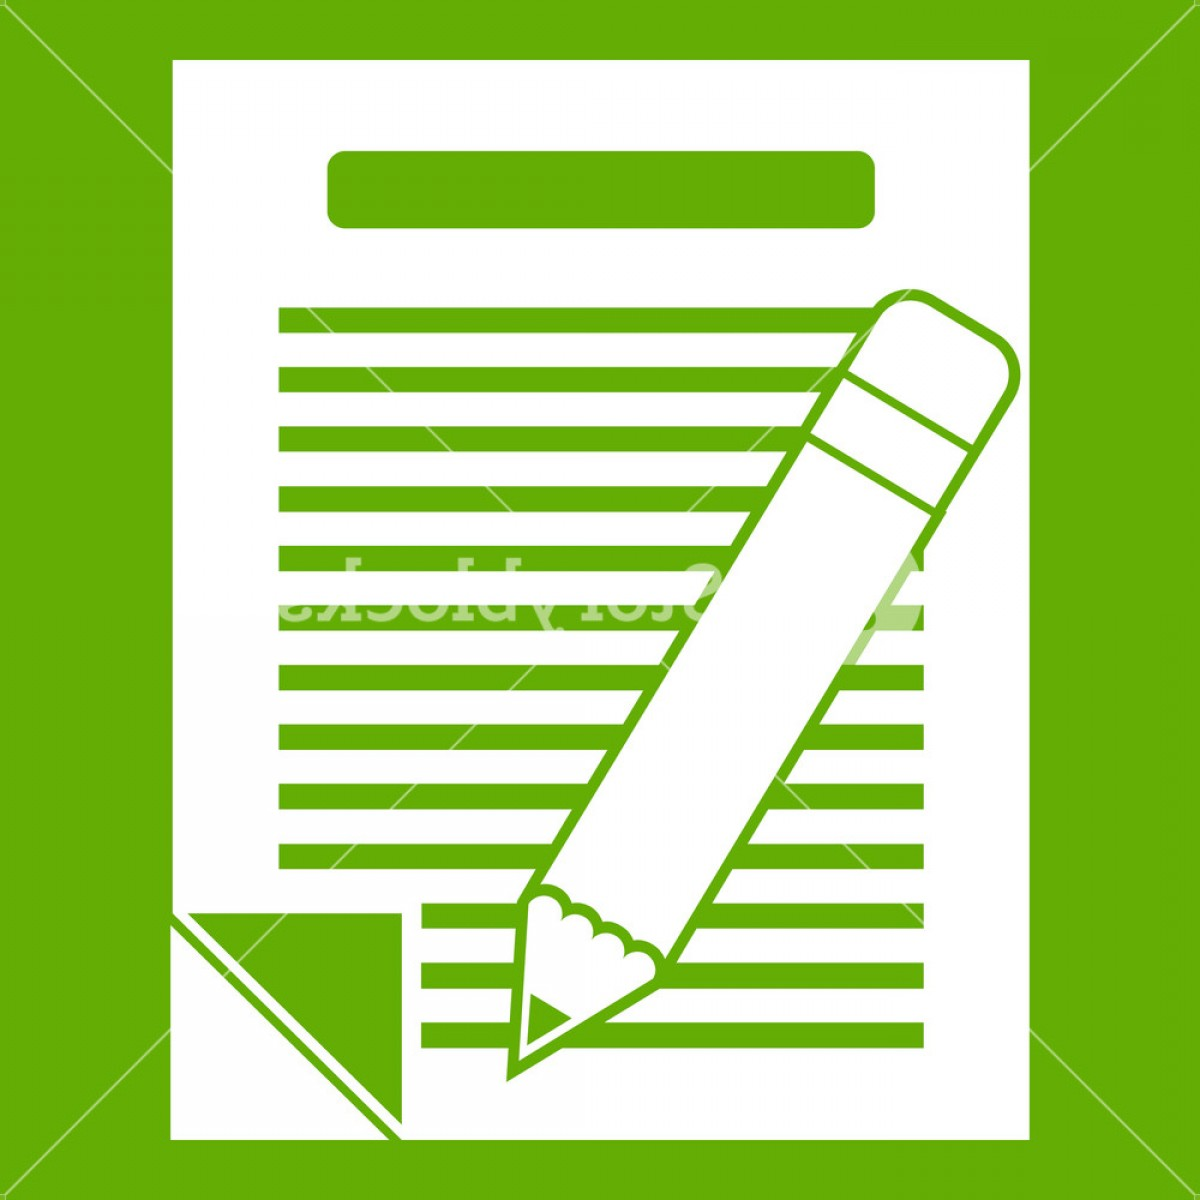 Paper And Pencil Icon Vector: Paper And Pencil Icon White Isolated On Green Background Vector Illustration Smwjtfechqjosyydc